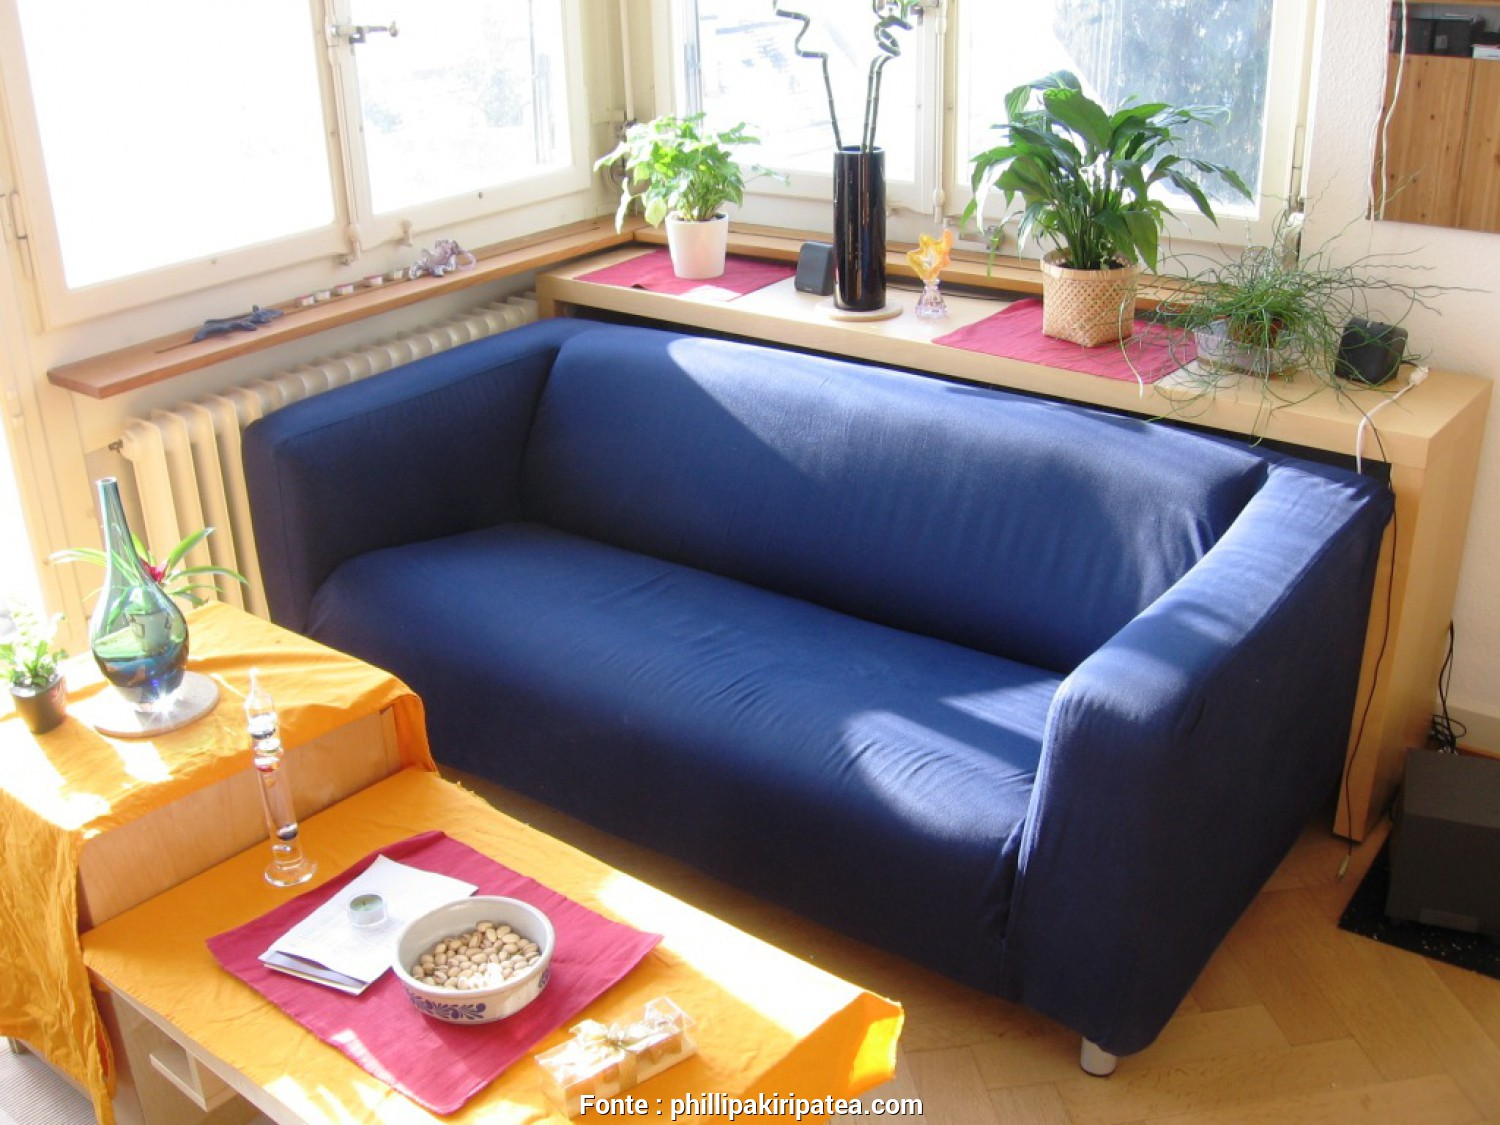 Klippan Ikea Reviews, Superiore Furniture: Bring Depth, Modernity To Your Contemporary Living